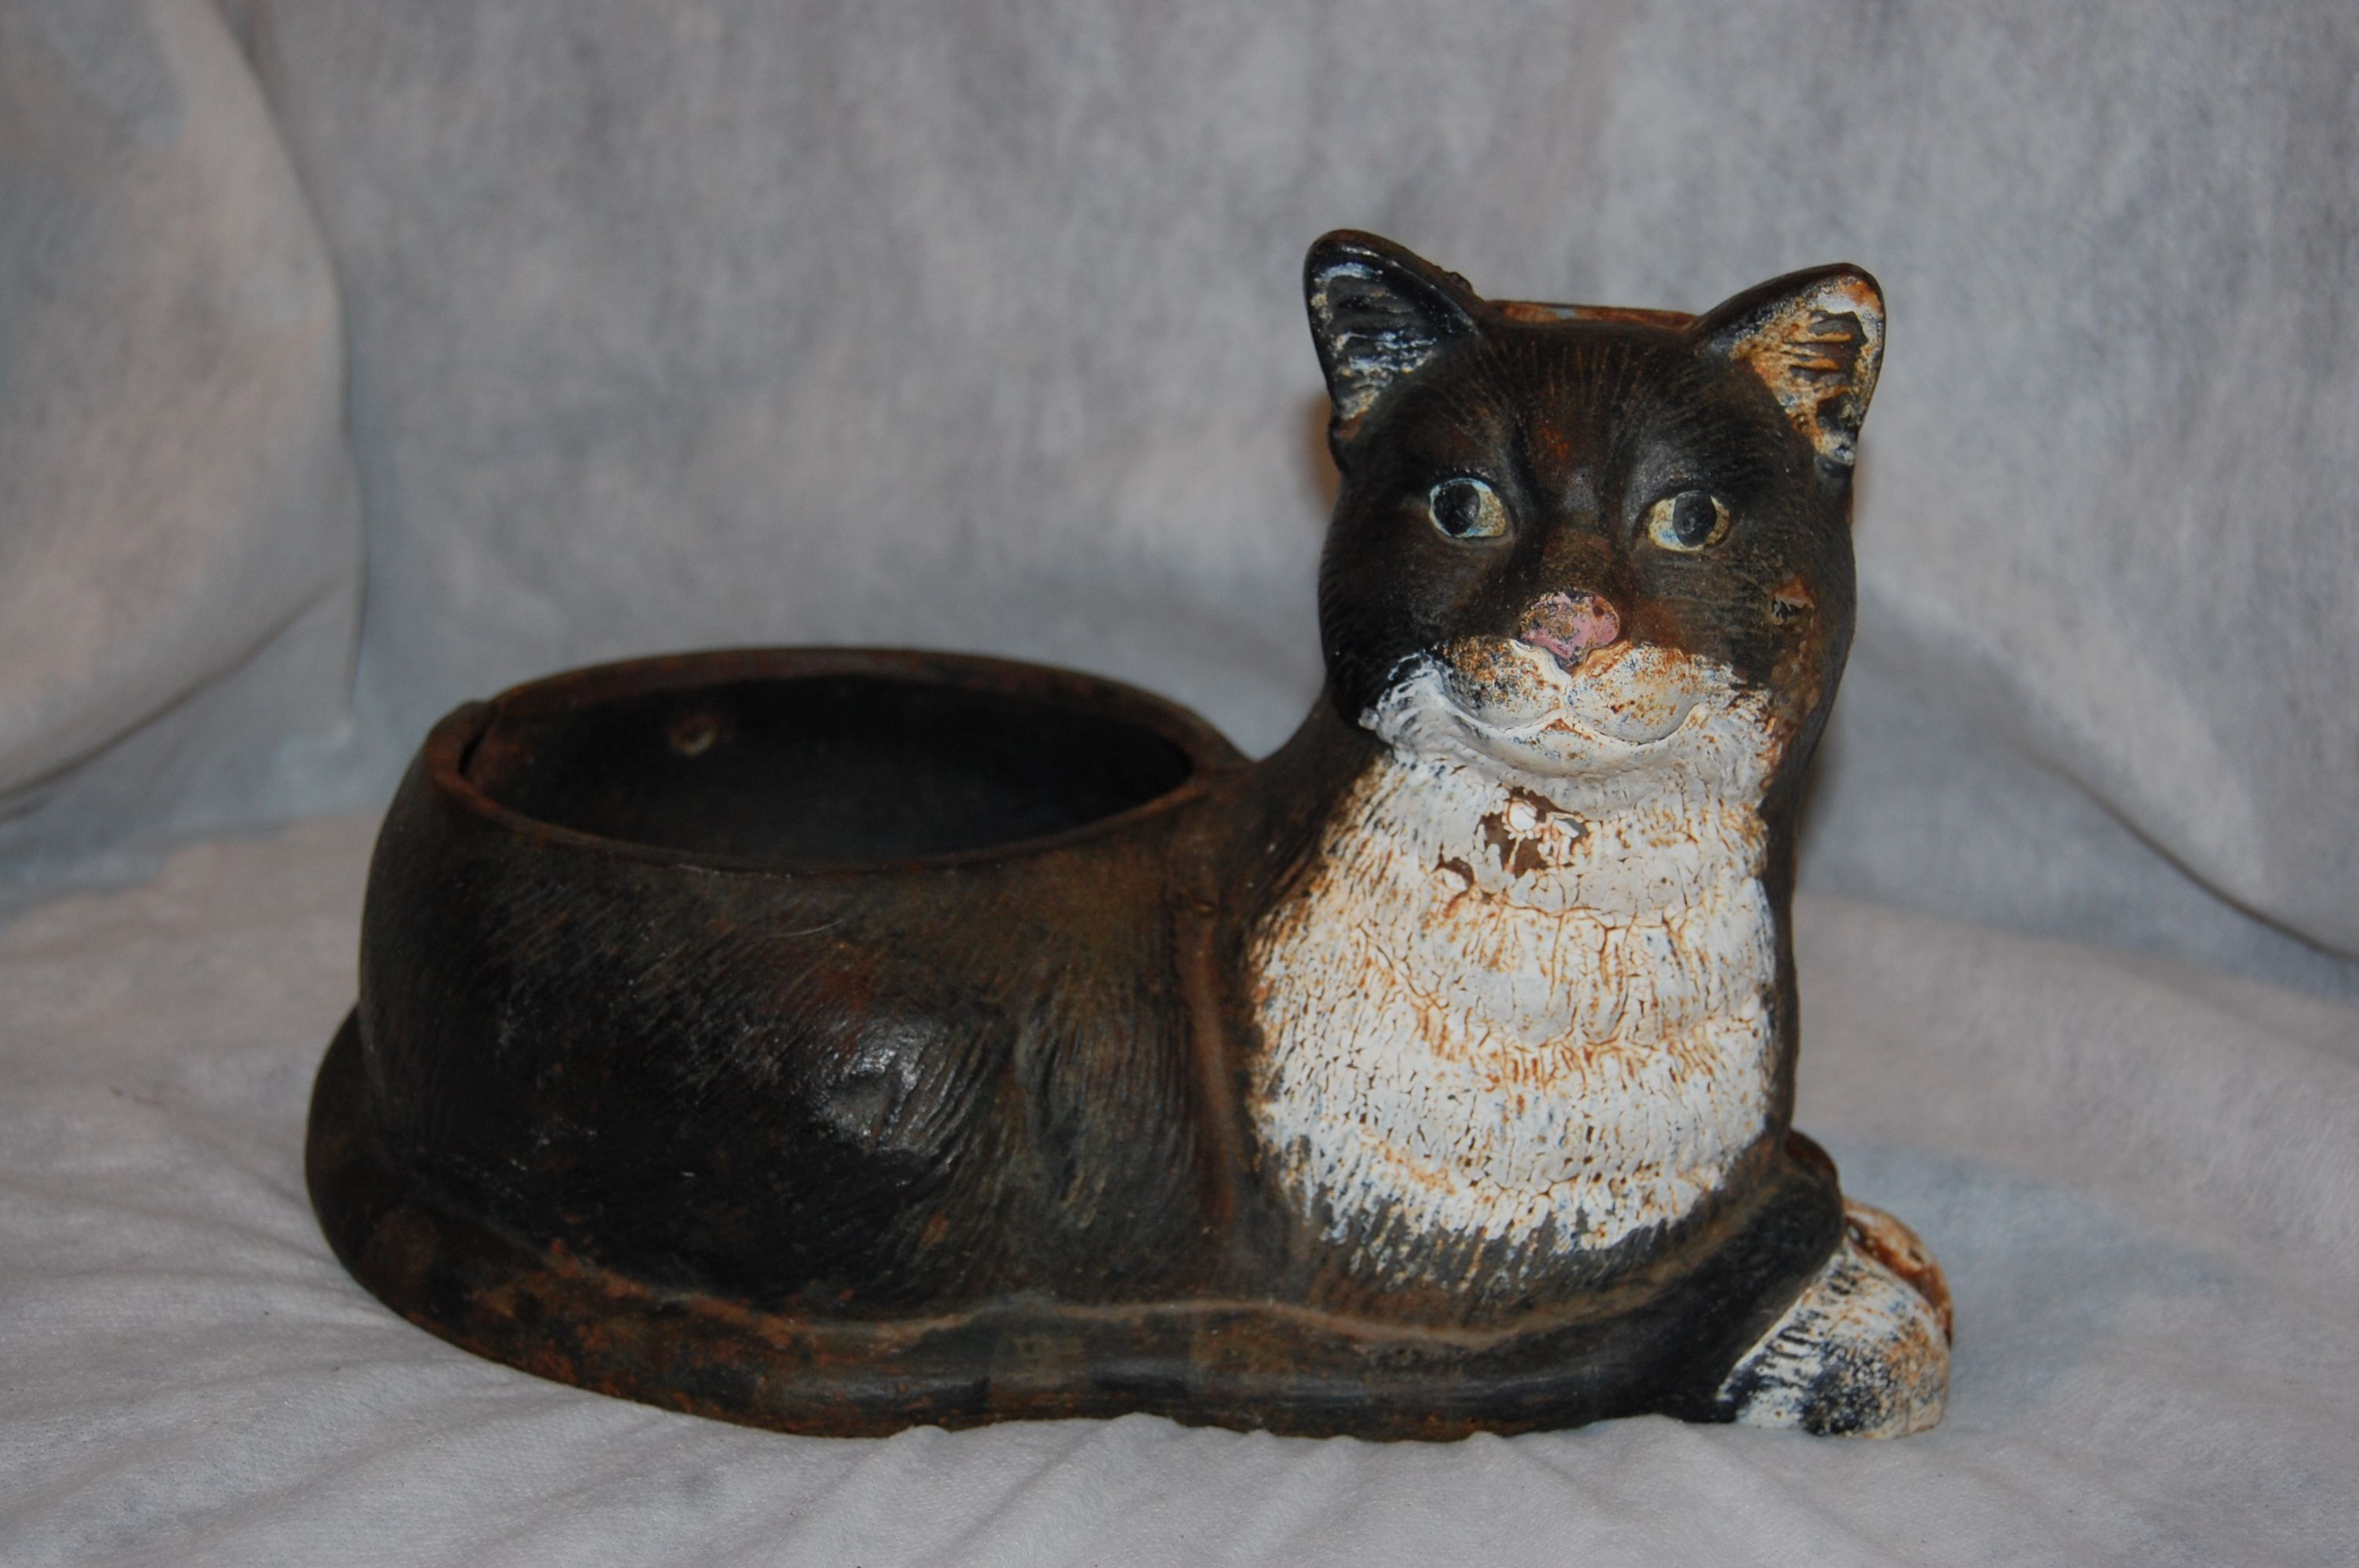 Cast iron kitty cat water food bowl holder dog bowls